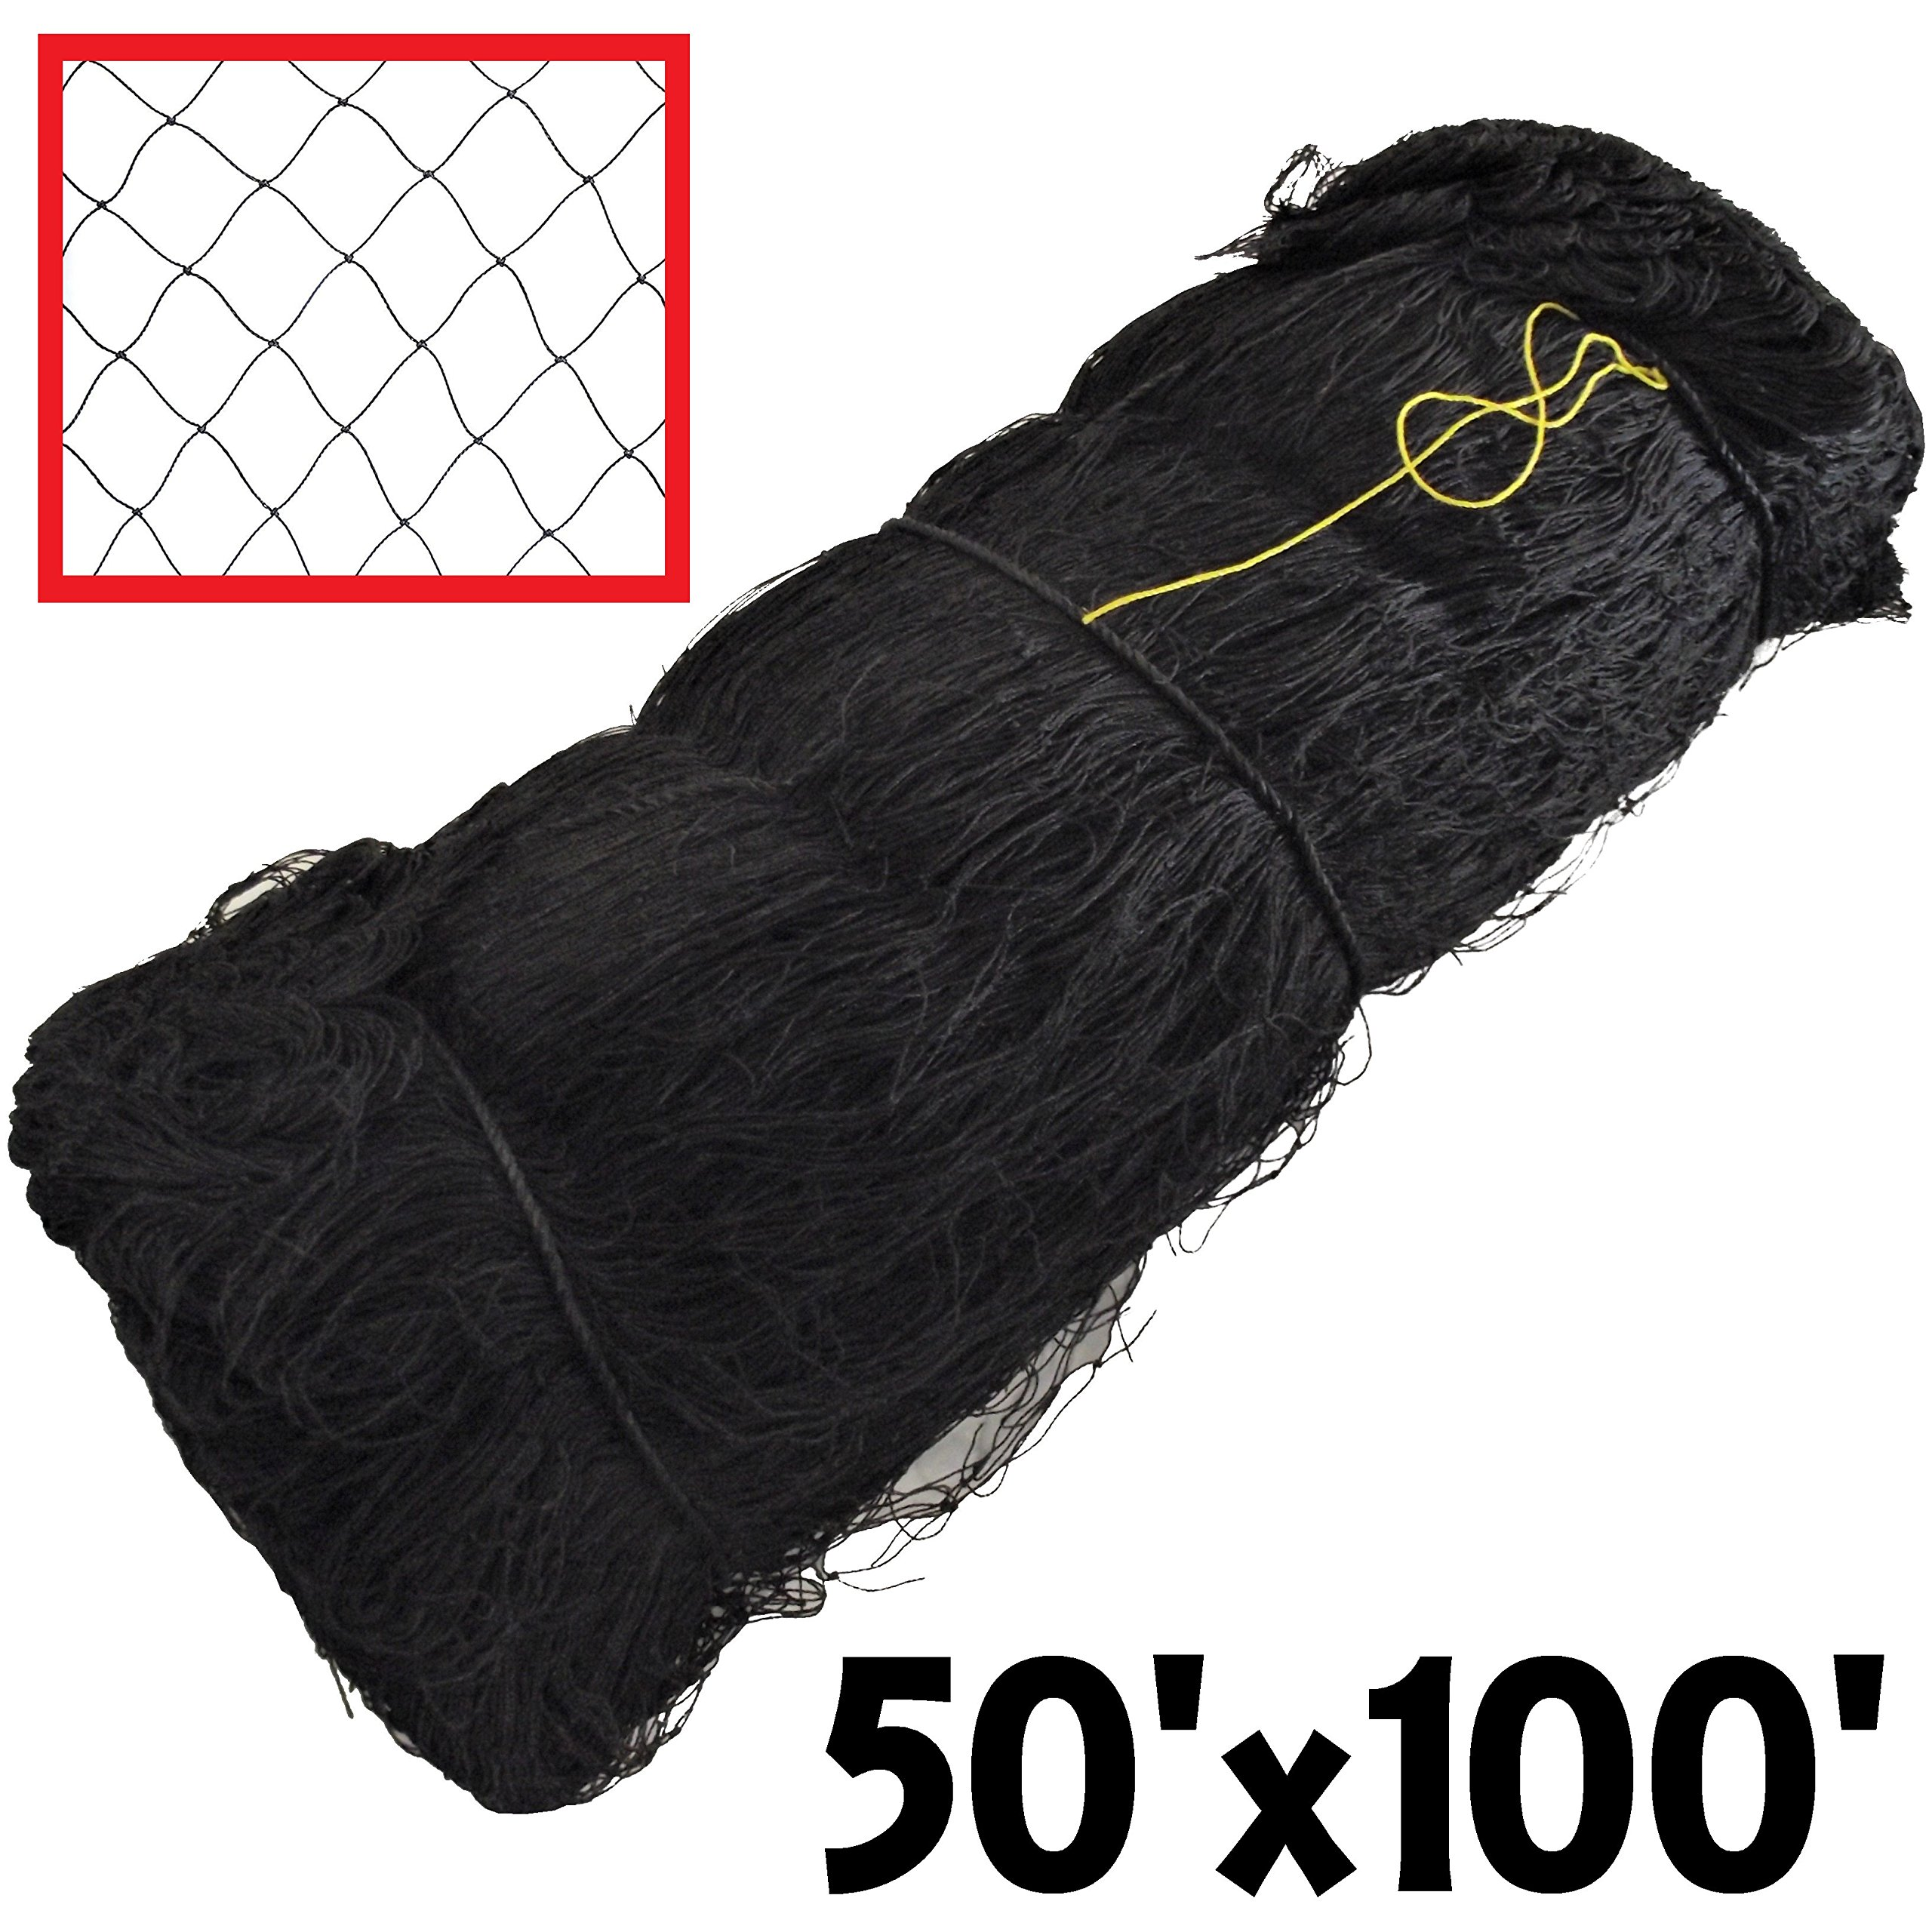 RITE FARM PRODUCTS 50X100 POULTRY BIRD AVIARY NETTING GAME PEN NET GARDEN CHICKEN ANTI by Rite Farm Products